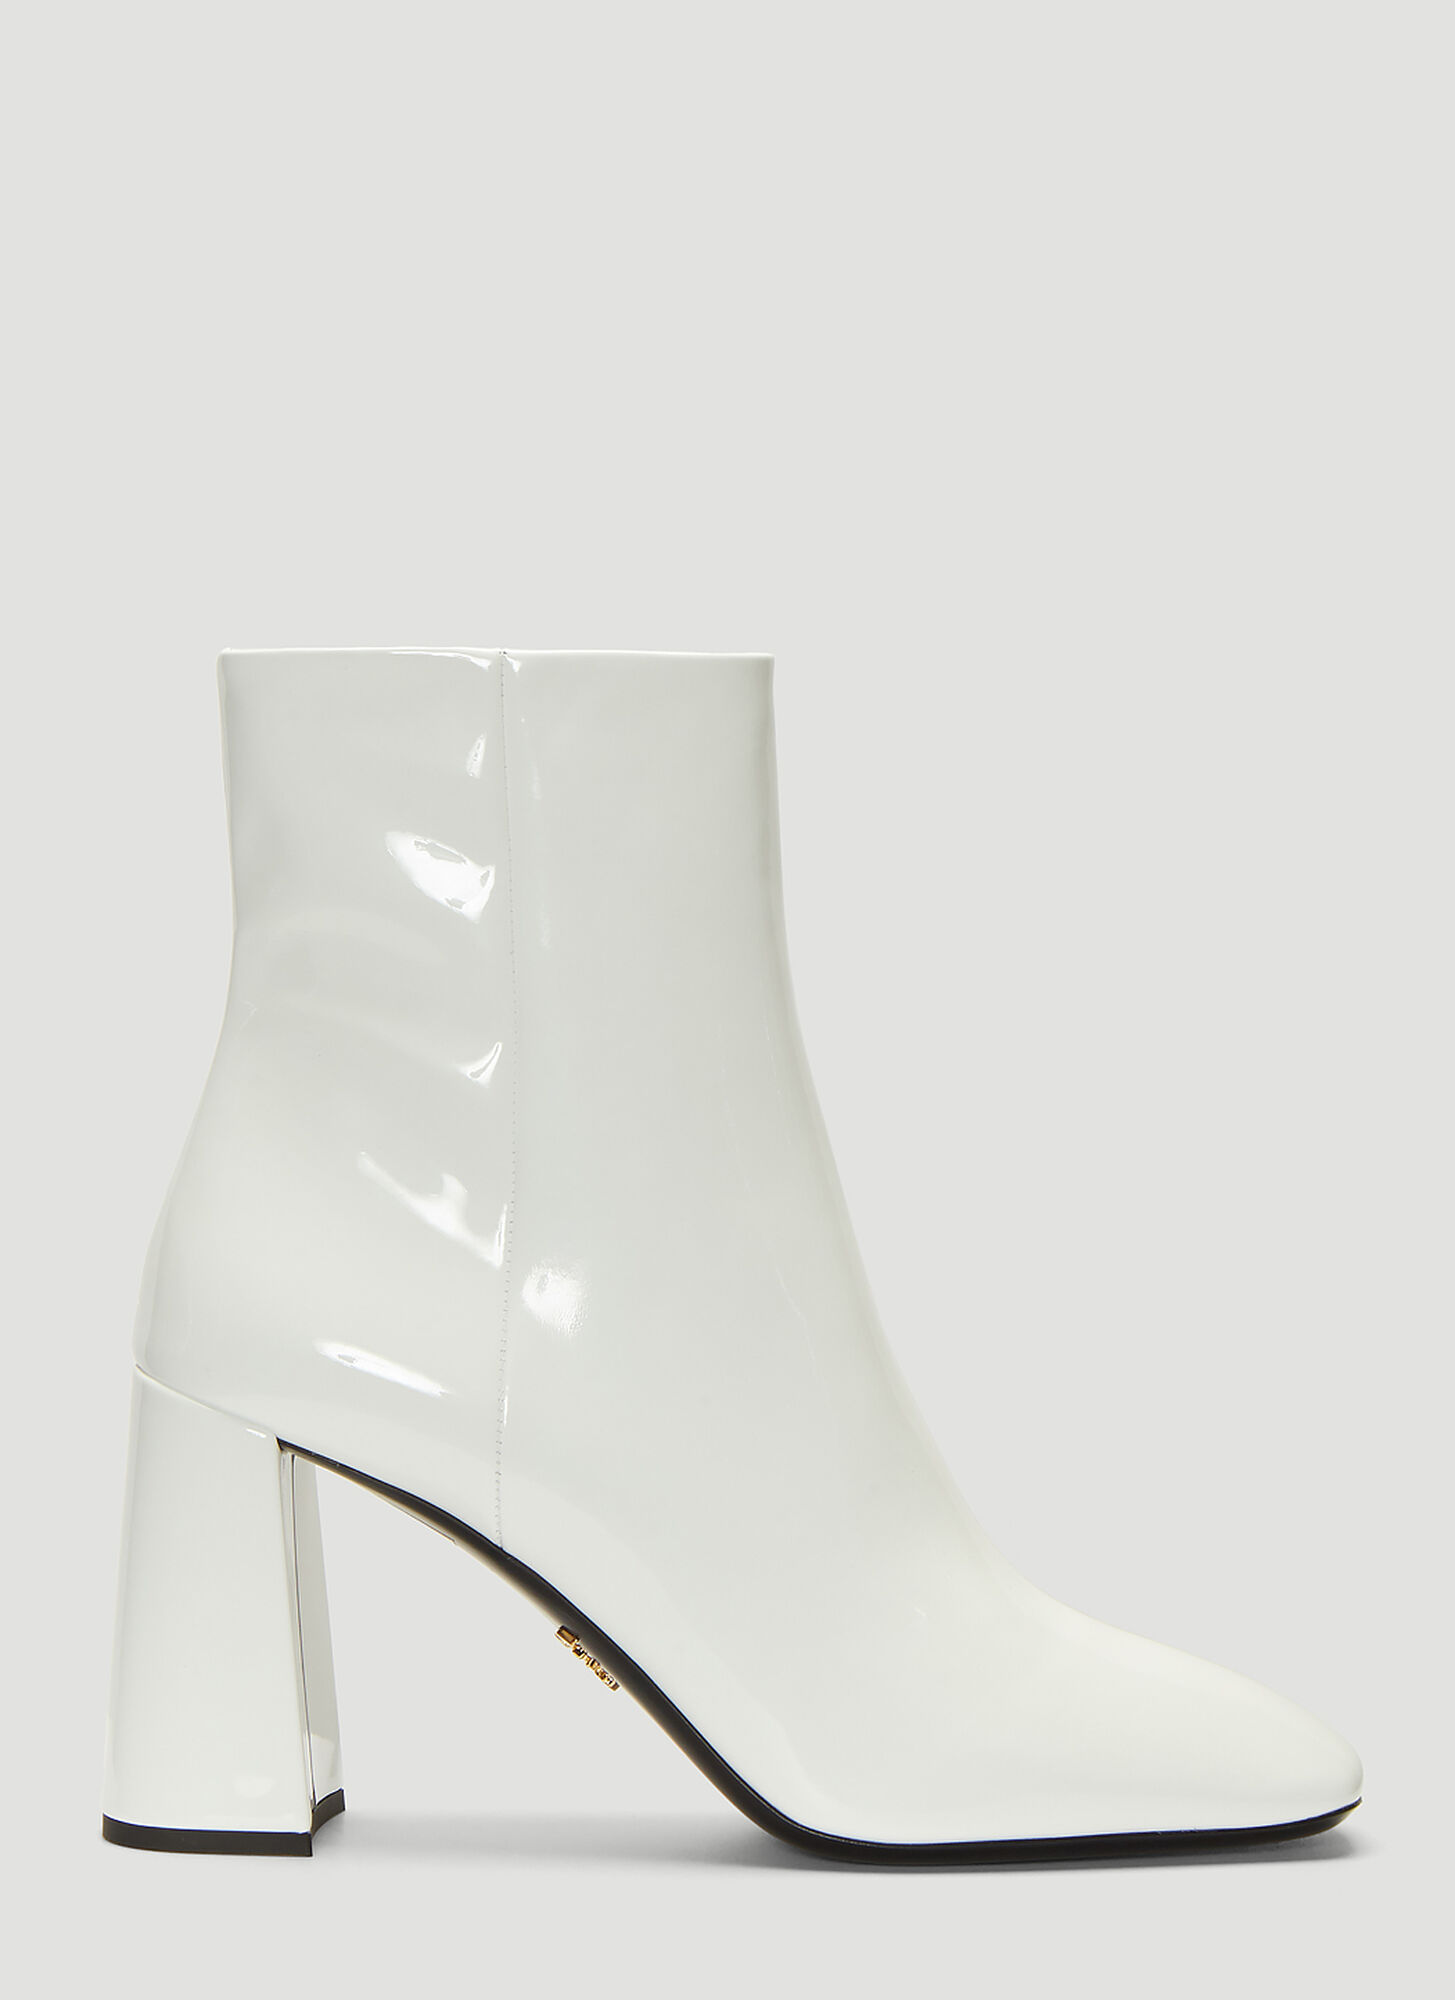 Prada Patent Leather Ankle Boots in White